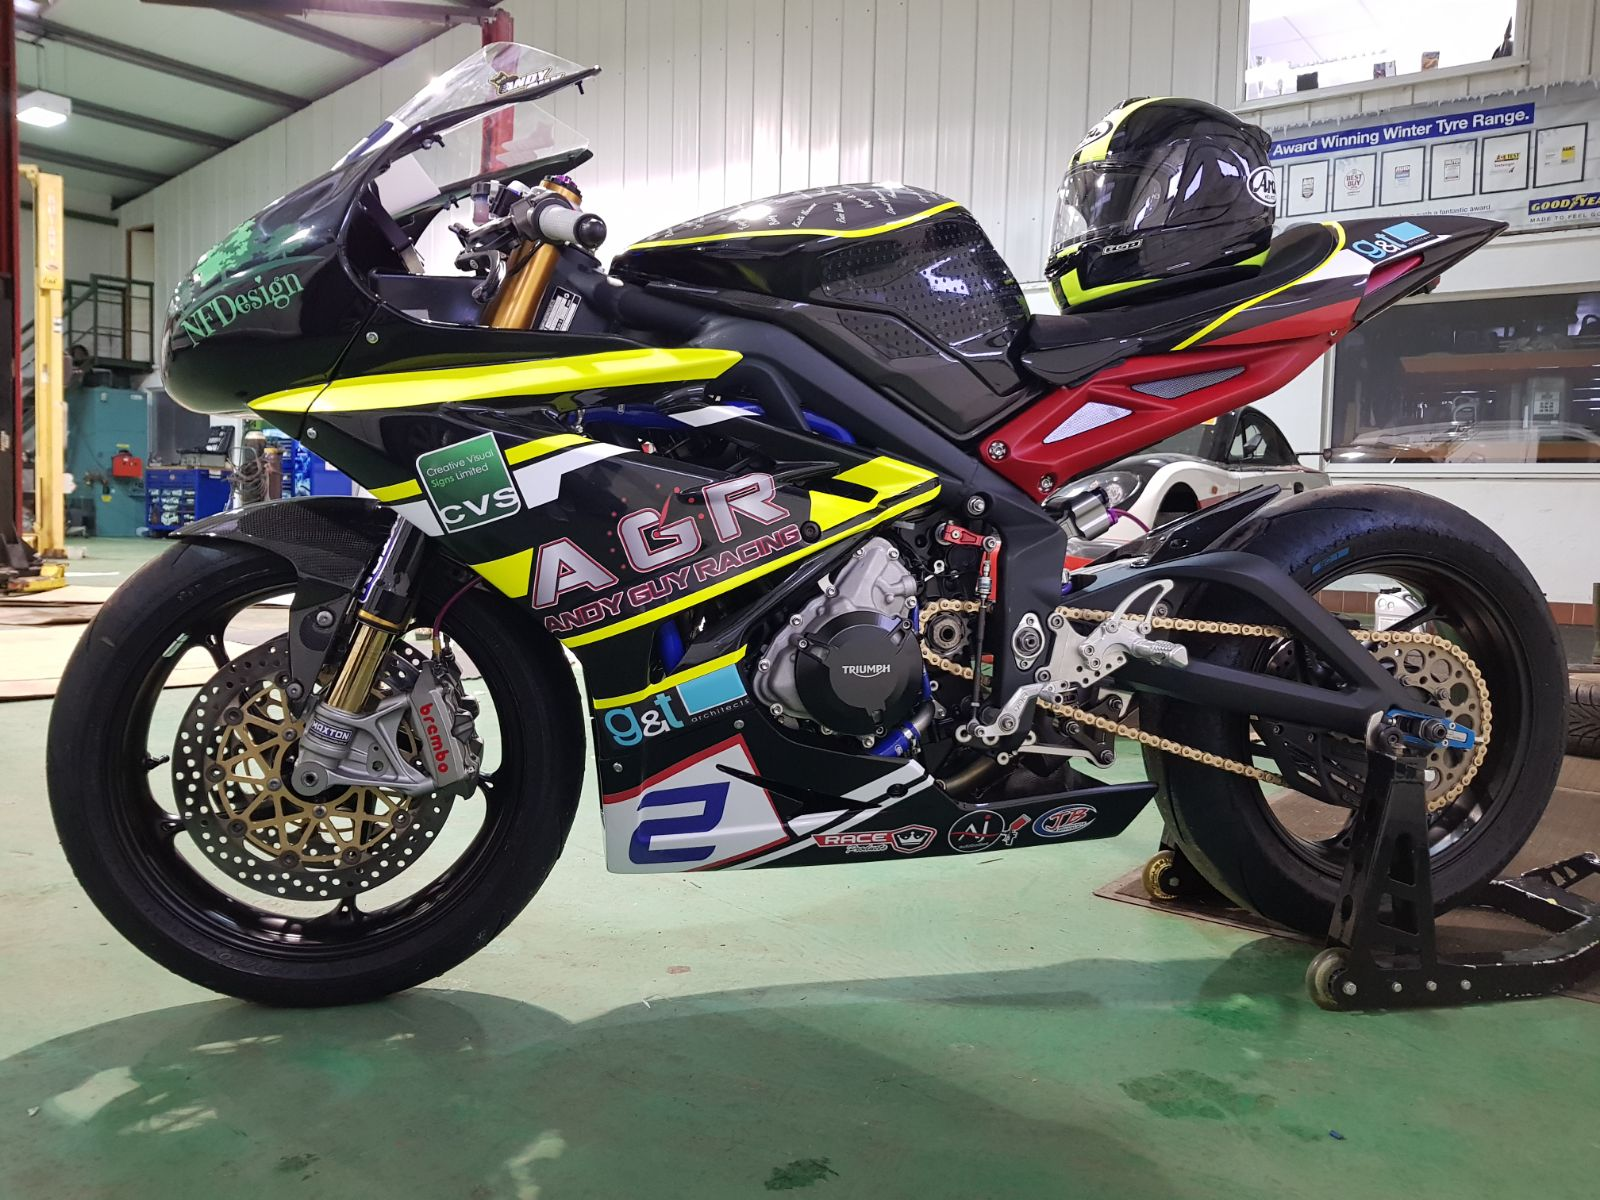 Andy Guy's NLR Club 600-winning Triumph 675 that he's now taking to the mean streets of Aintree and Thundersport...